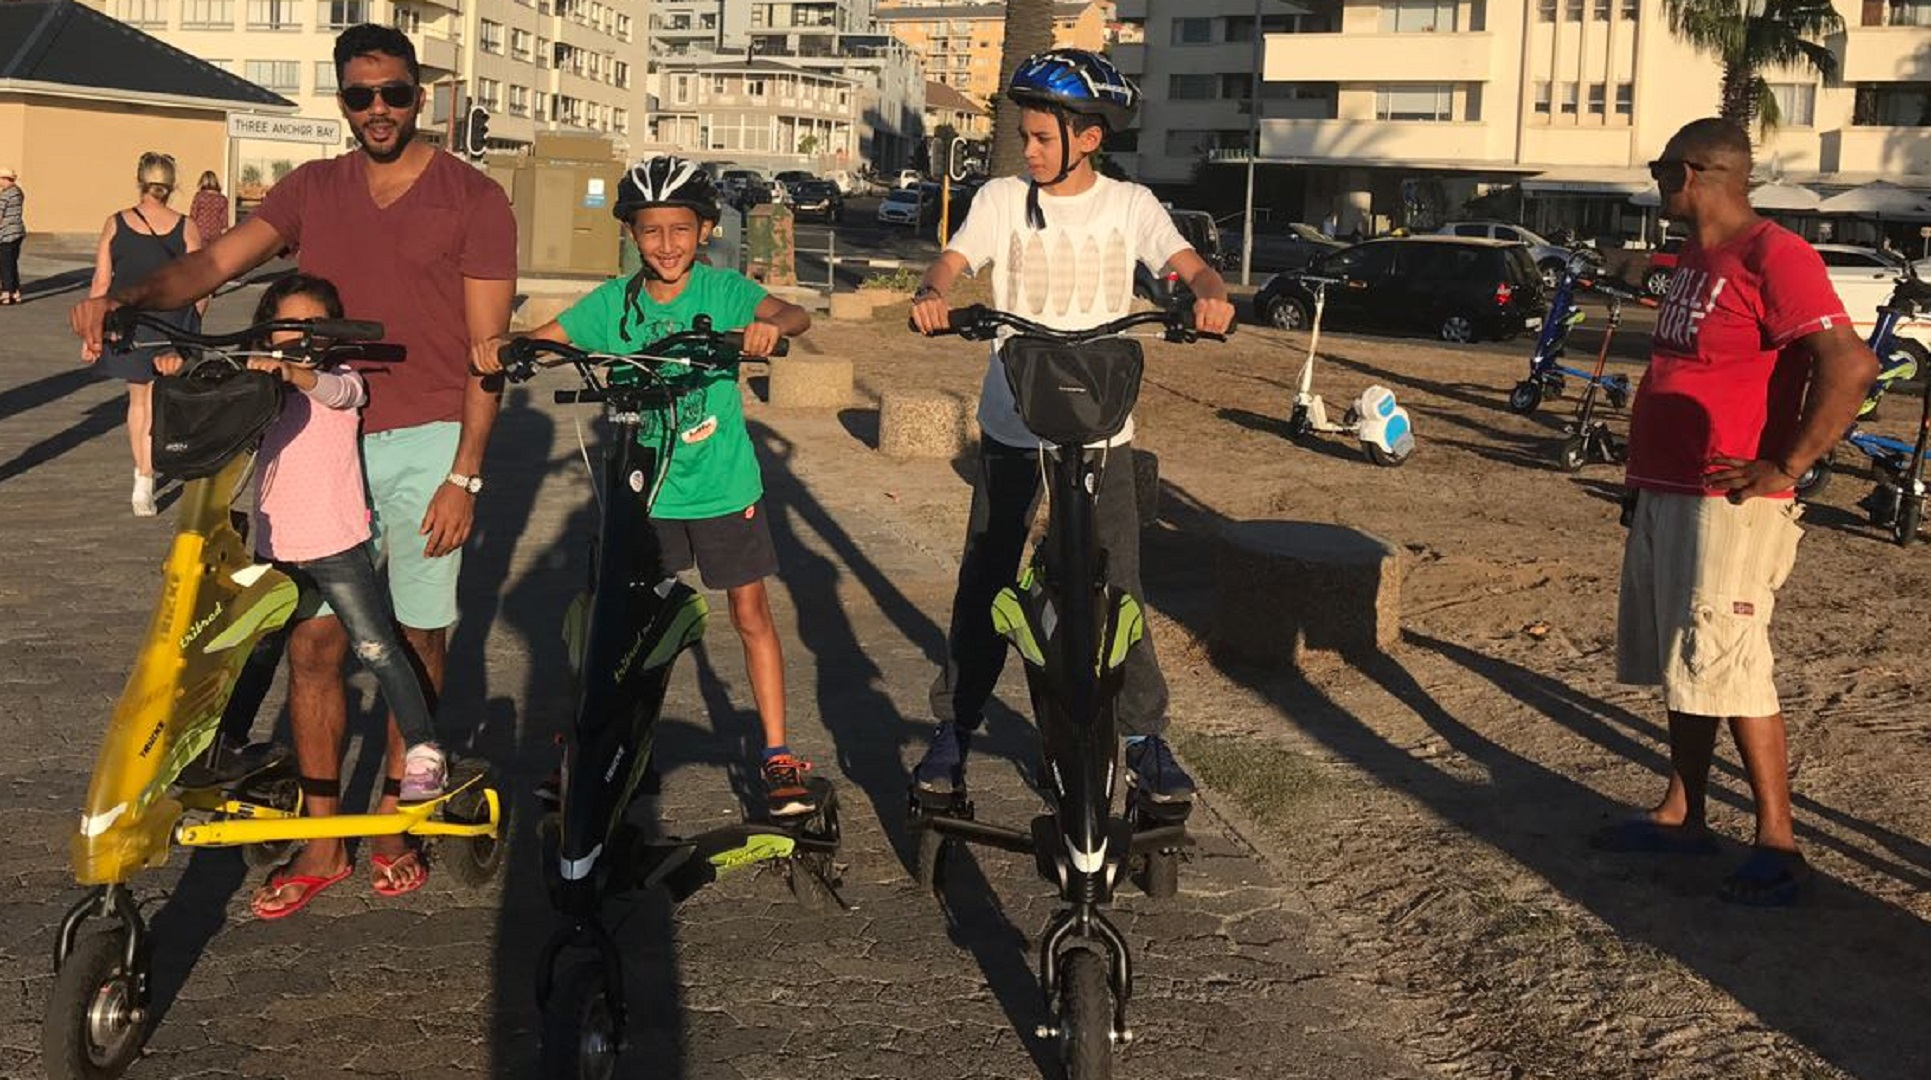 Shuaib Walters, fun with family, cape town city